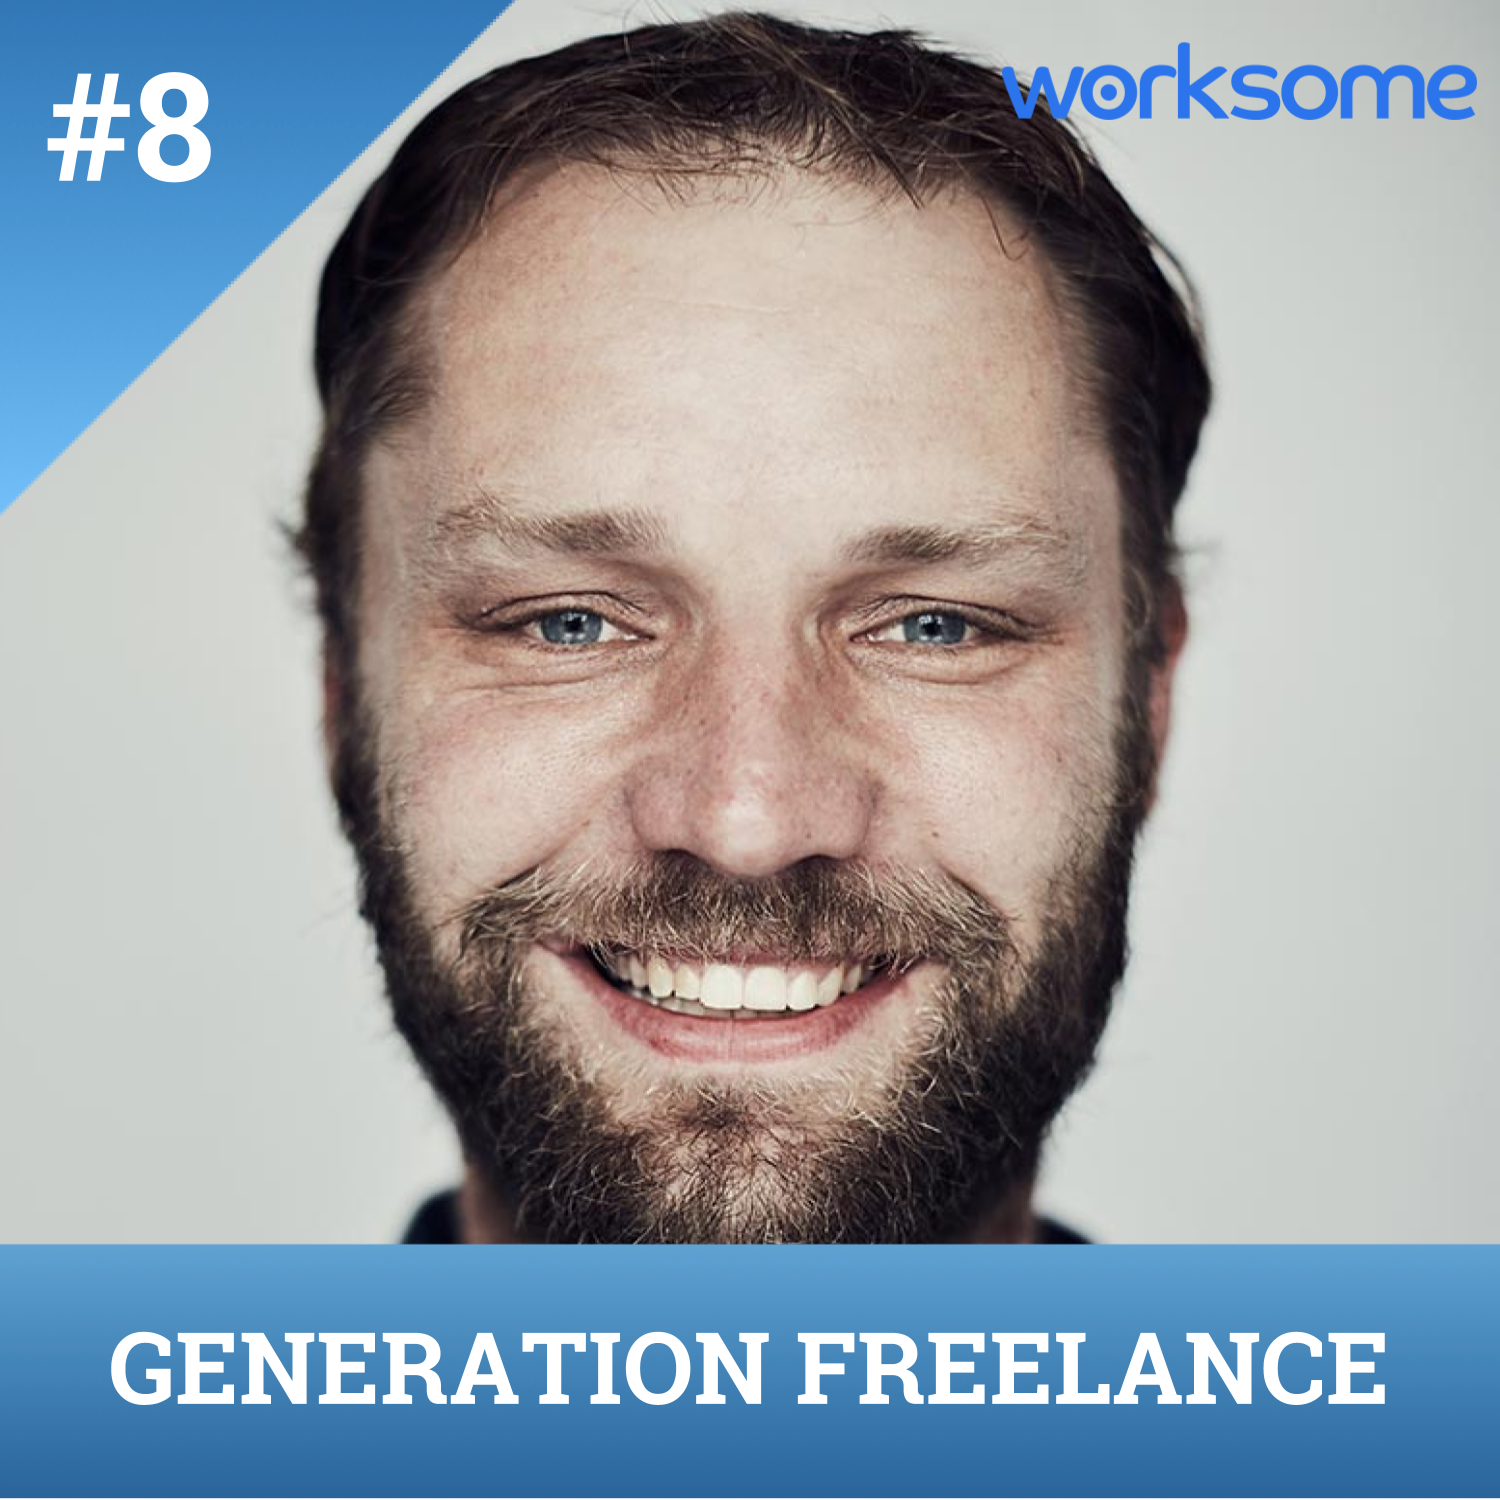 #8 - Mit liv som freelance IT-konsulent. Thomas Qvist om karrieren som professionel freelance IT konsulent